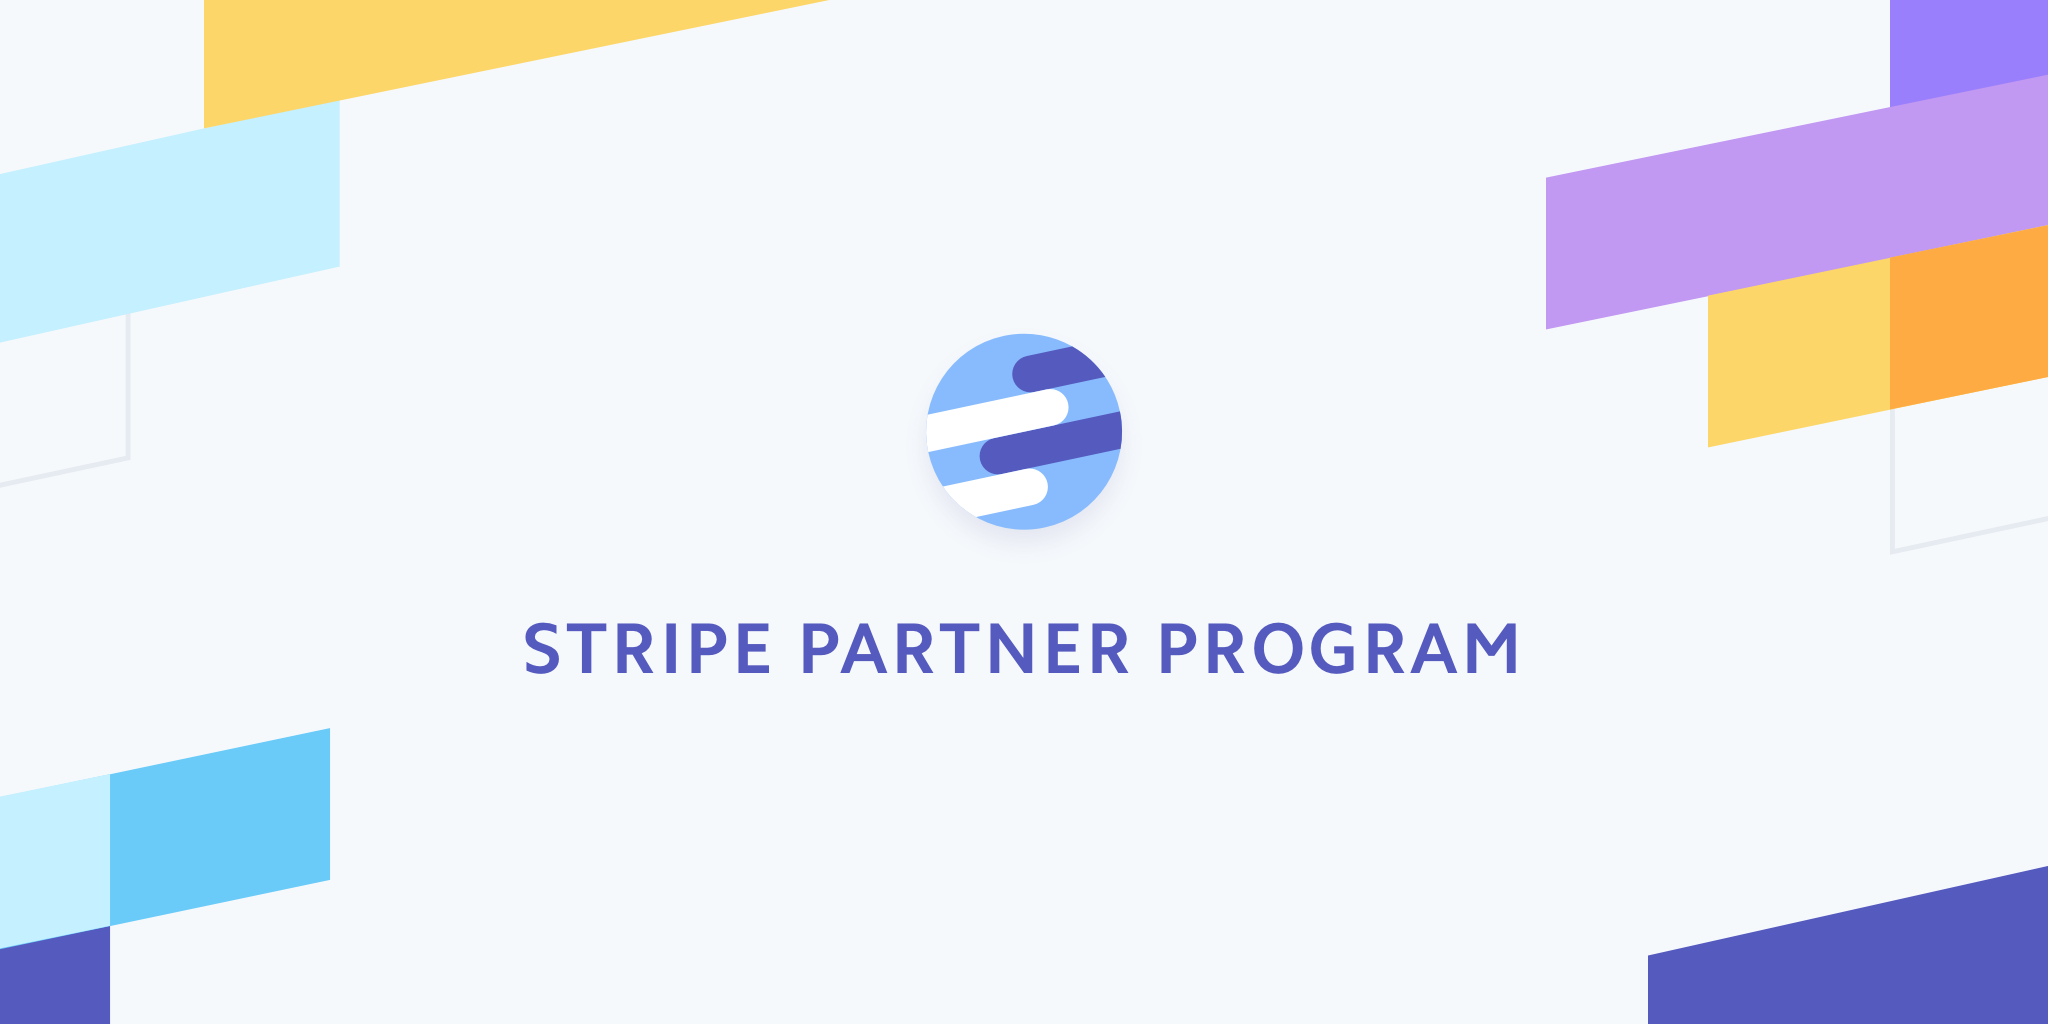 CashNotify joins the new Stripe Partner Program